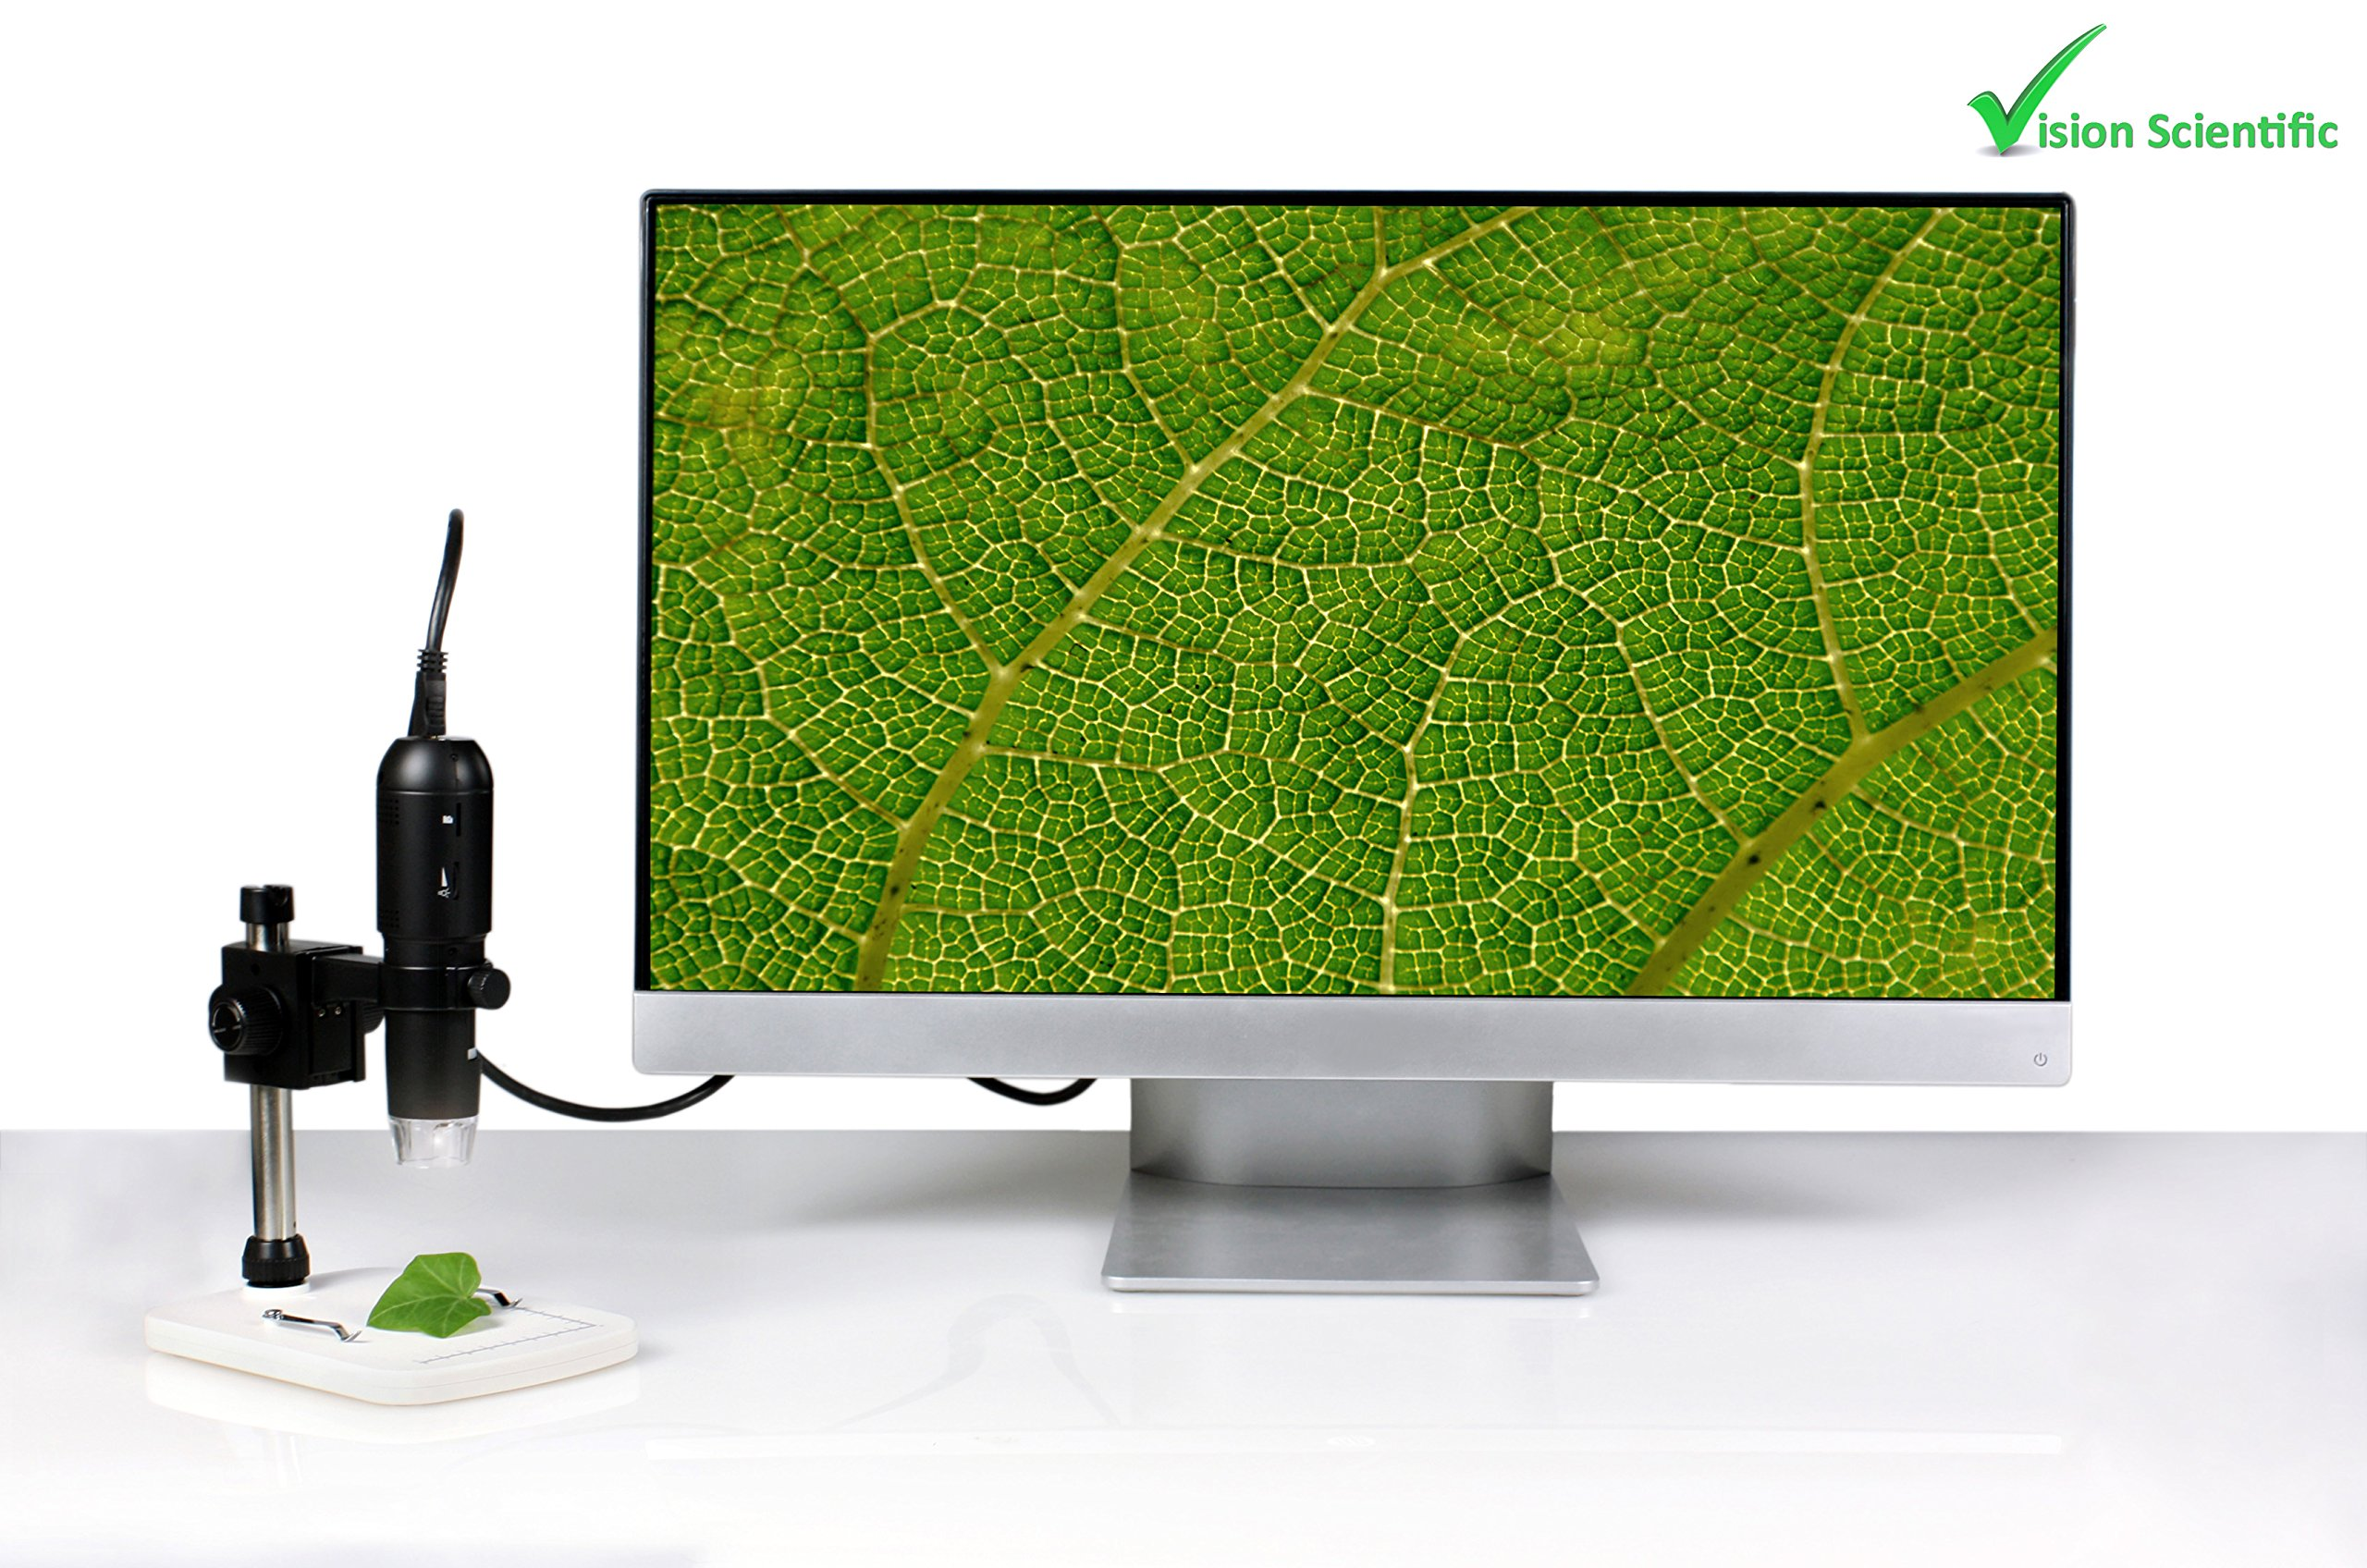 Vision Scientific VMD005 1080P Full HD Digital Microscope with 3MP Image Sensor, HDMI Cable to Connect to TV/Monitor, 220x Magnification, LED Illumination, USB, JPEG, Micro-SD Storage, PC/Mac by Vision Scientific